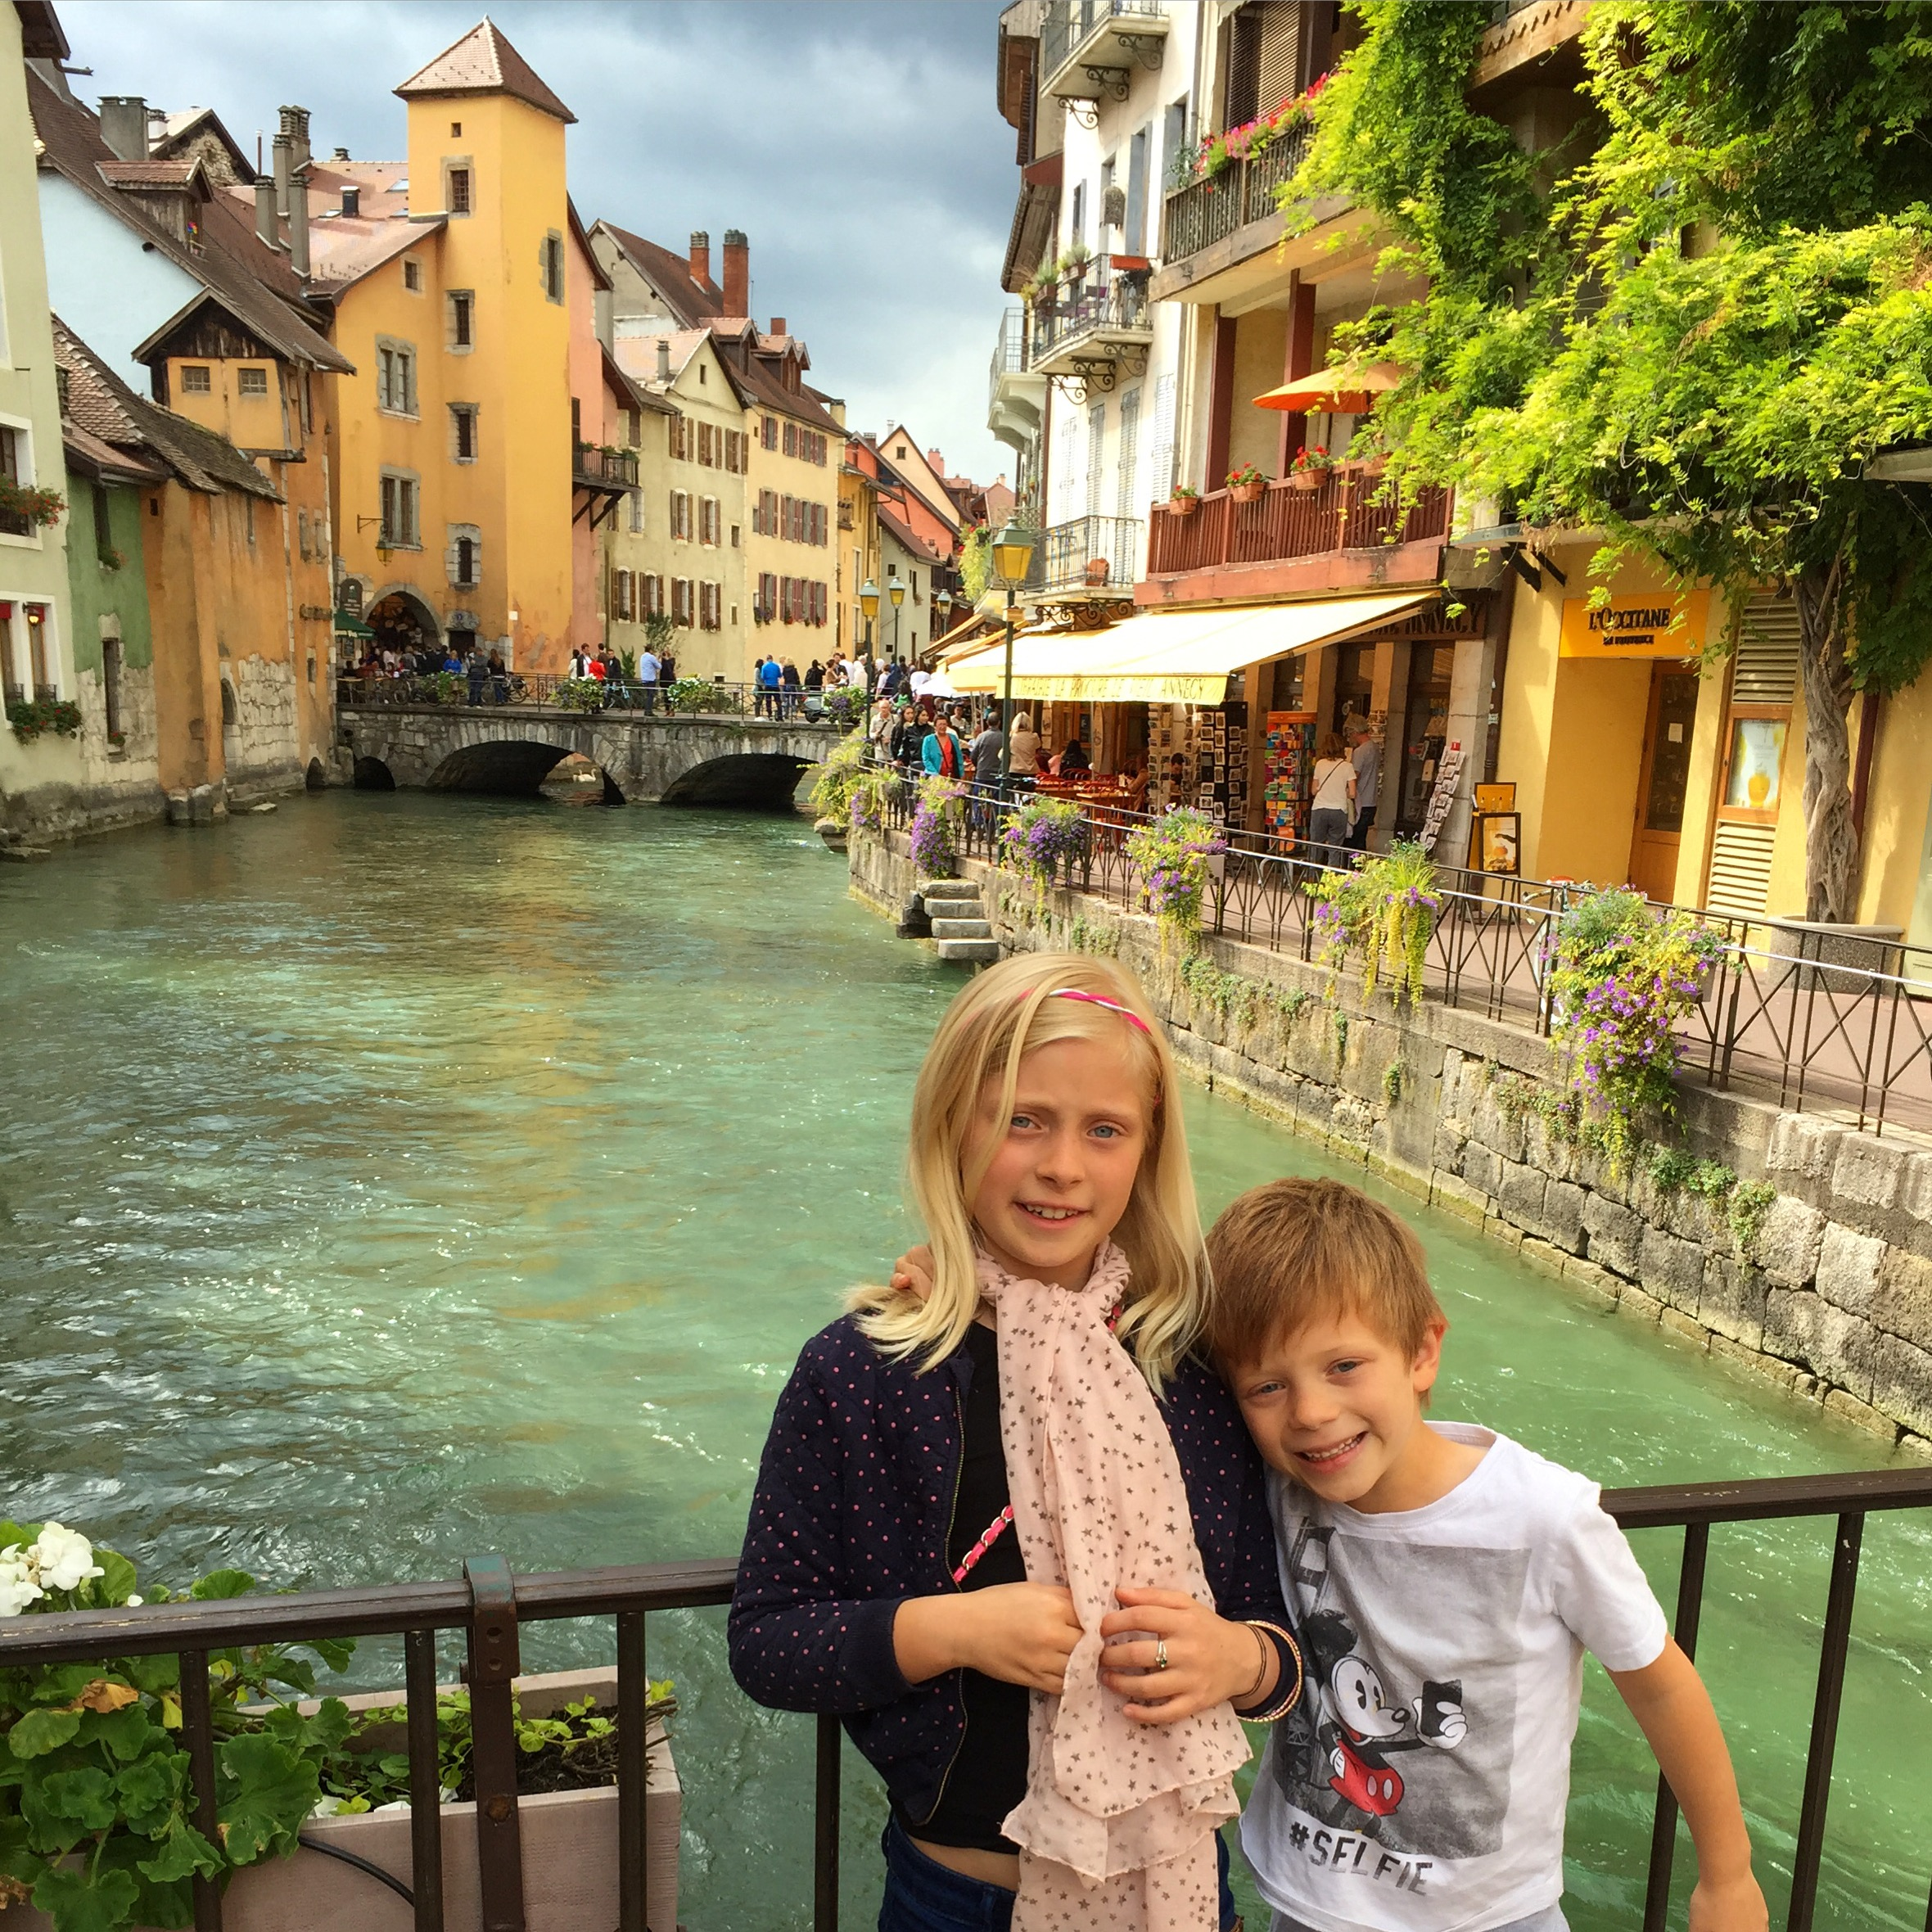 Bianca and Benjamin in the old town of Annecy. It's known as the Venice of France as there are many canals flowing through the city.